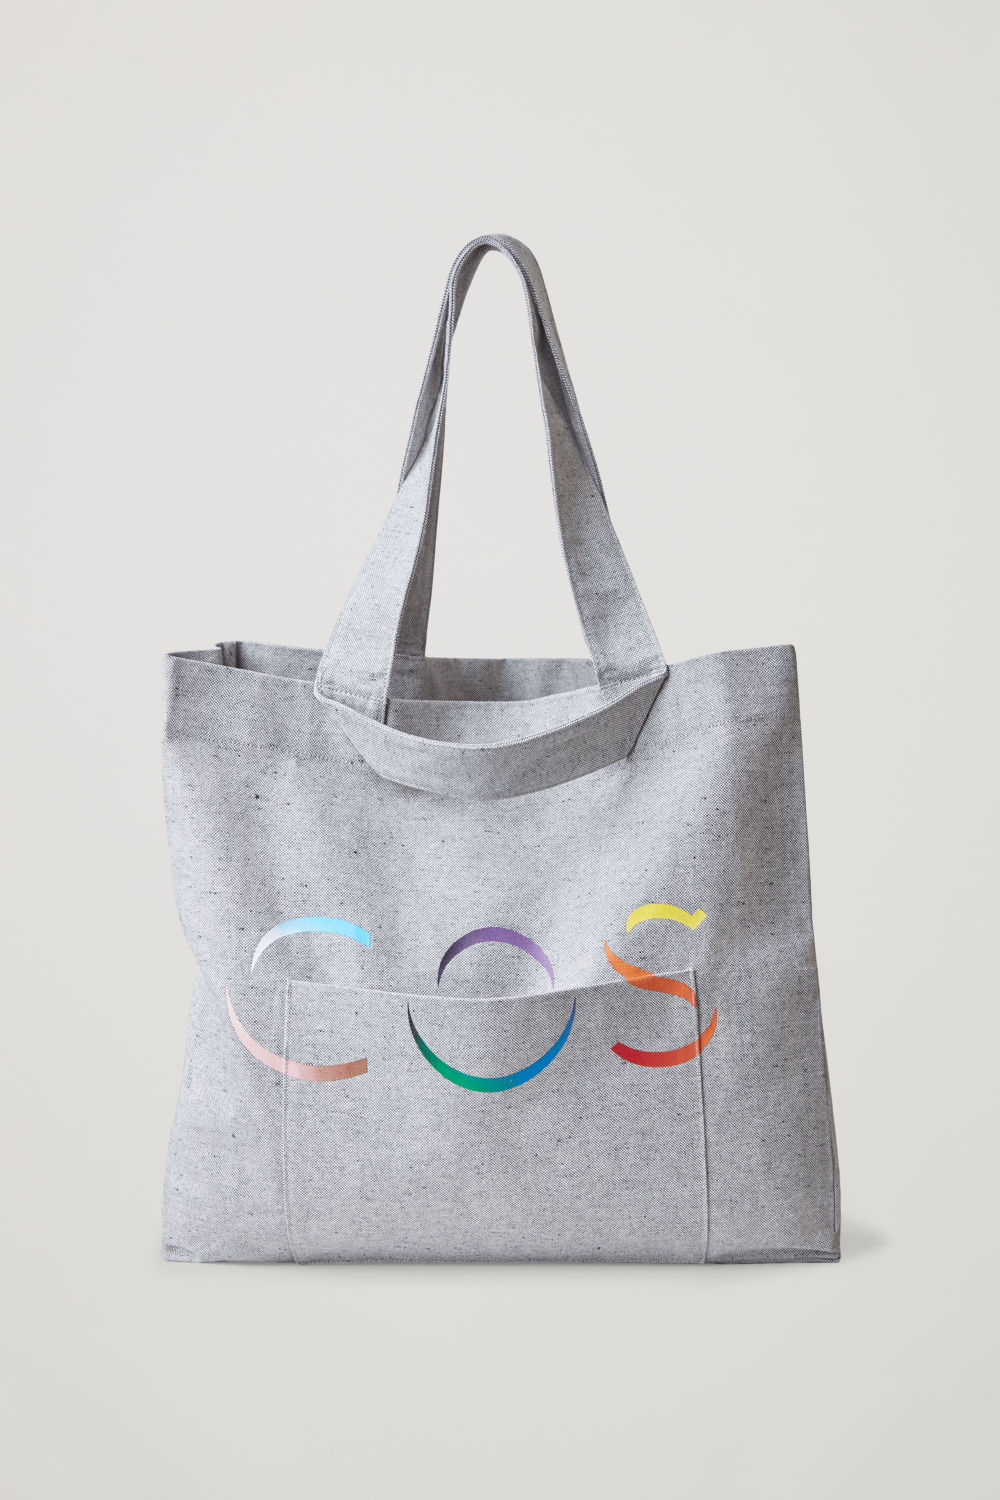 SPECIAL EDITION REPURPOSED COTTON TOTE BAG